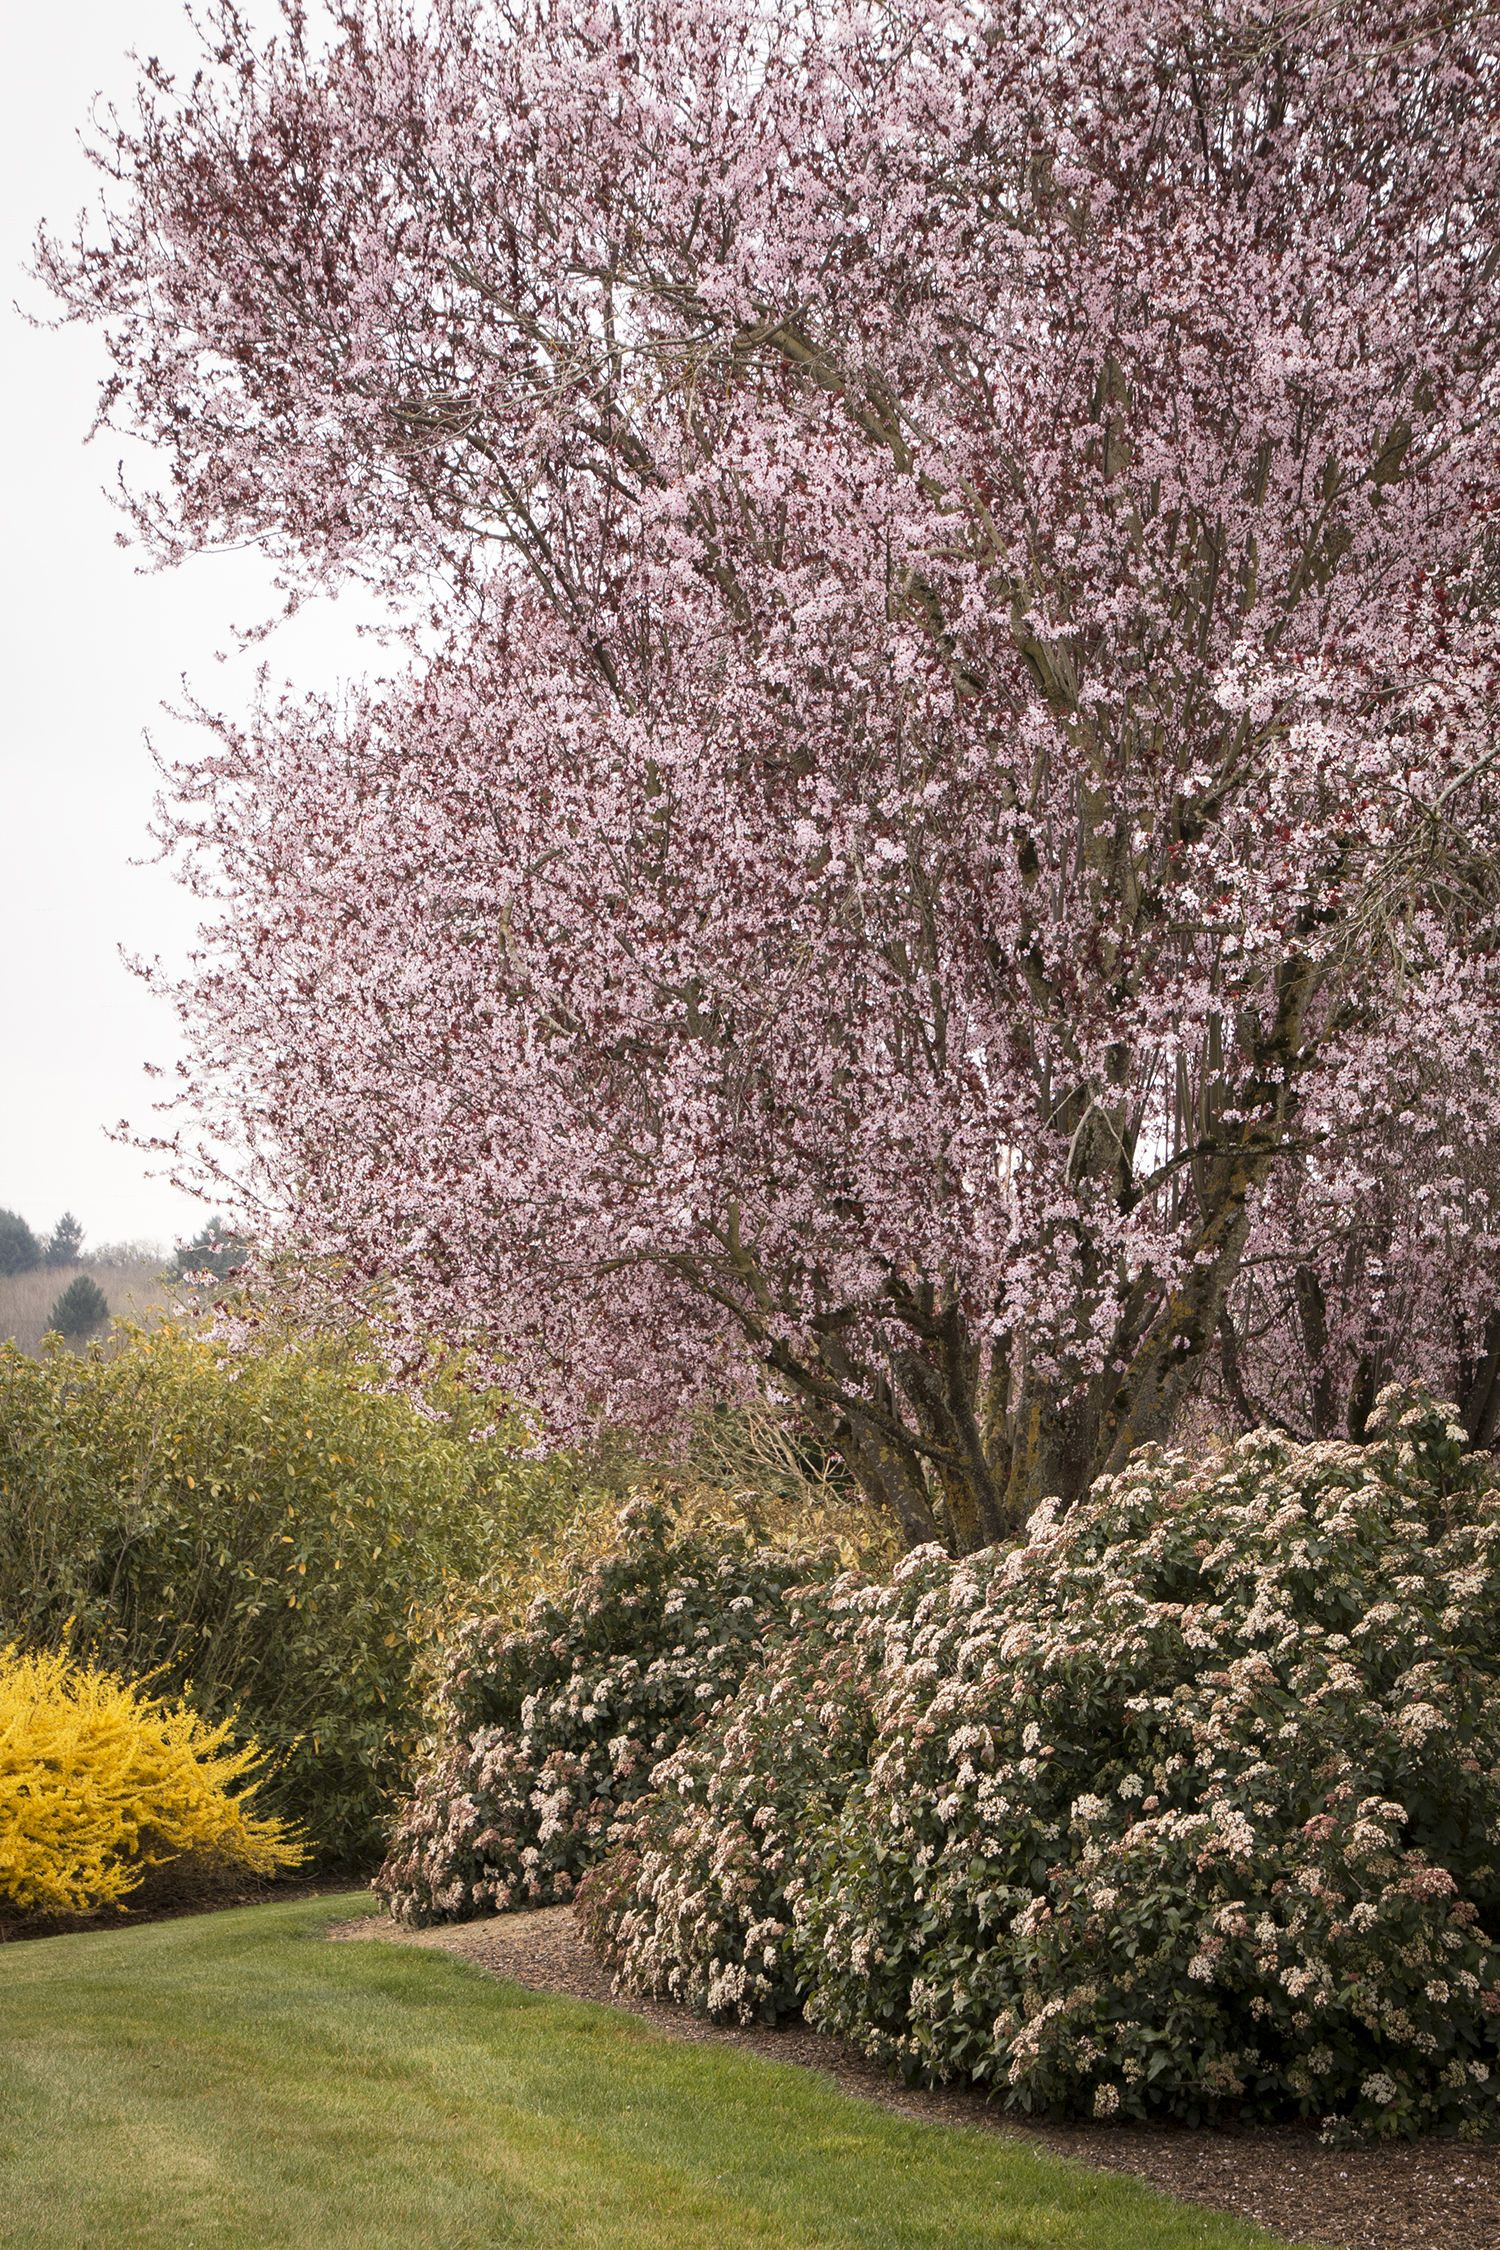 spring bouquet laurustinus is a beautiful evergreen shrub with lightly fragrant pinkish white flowers